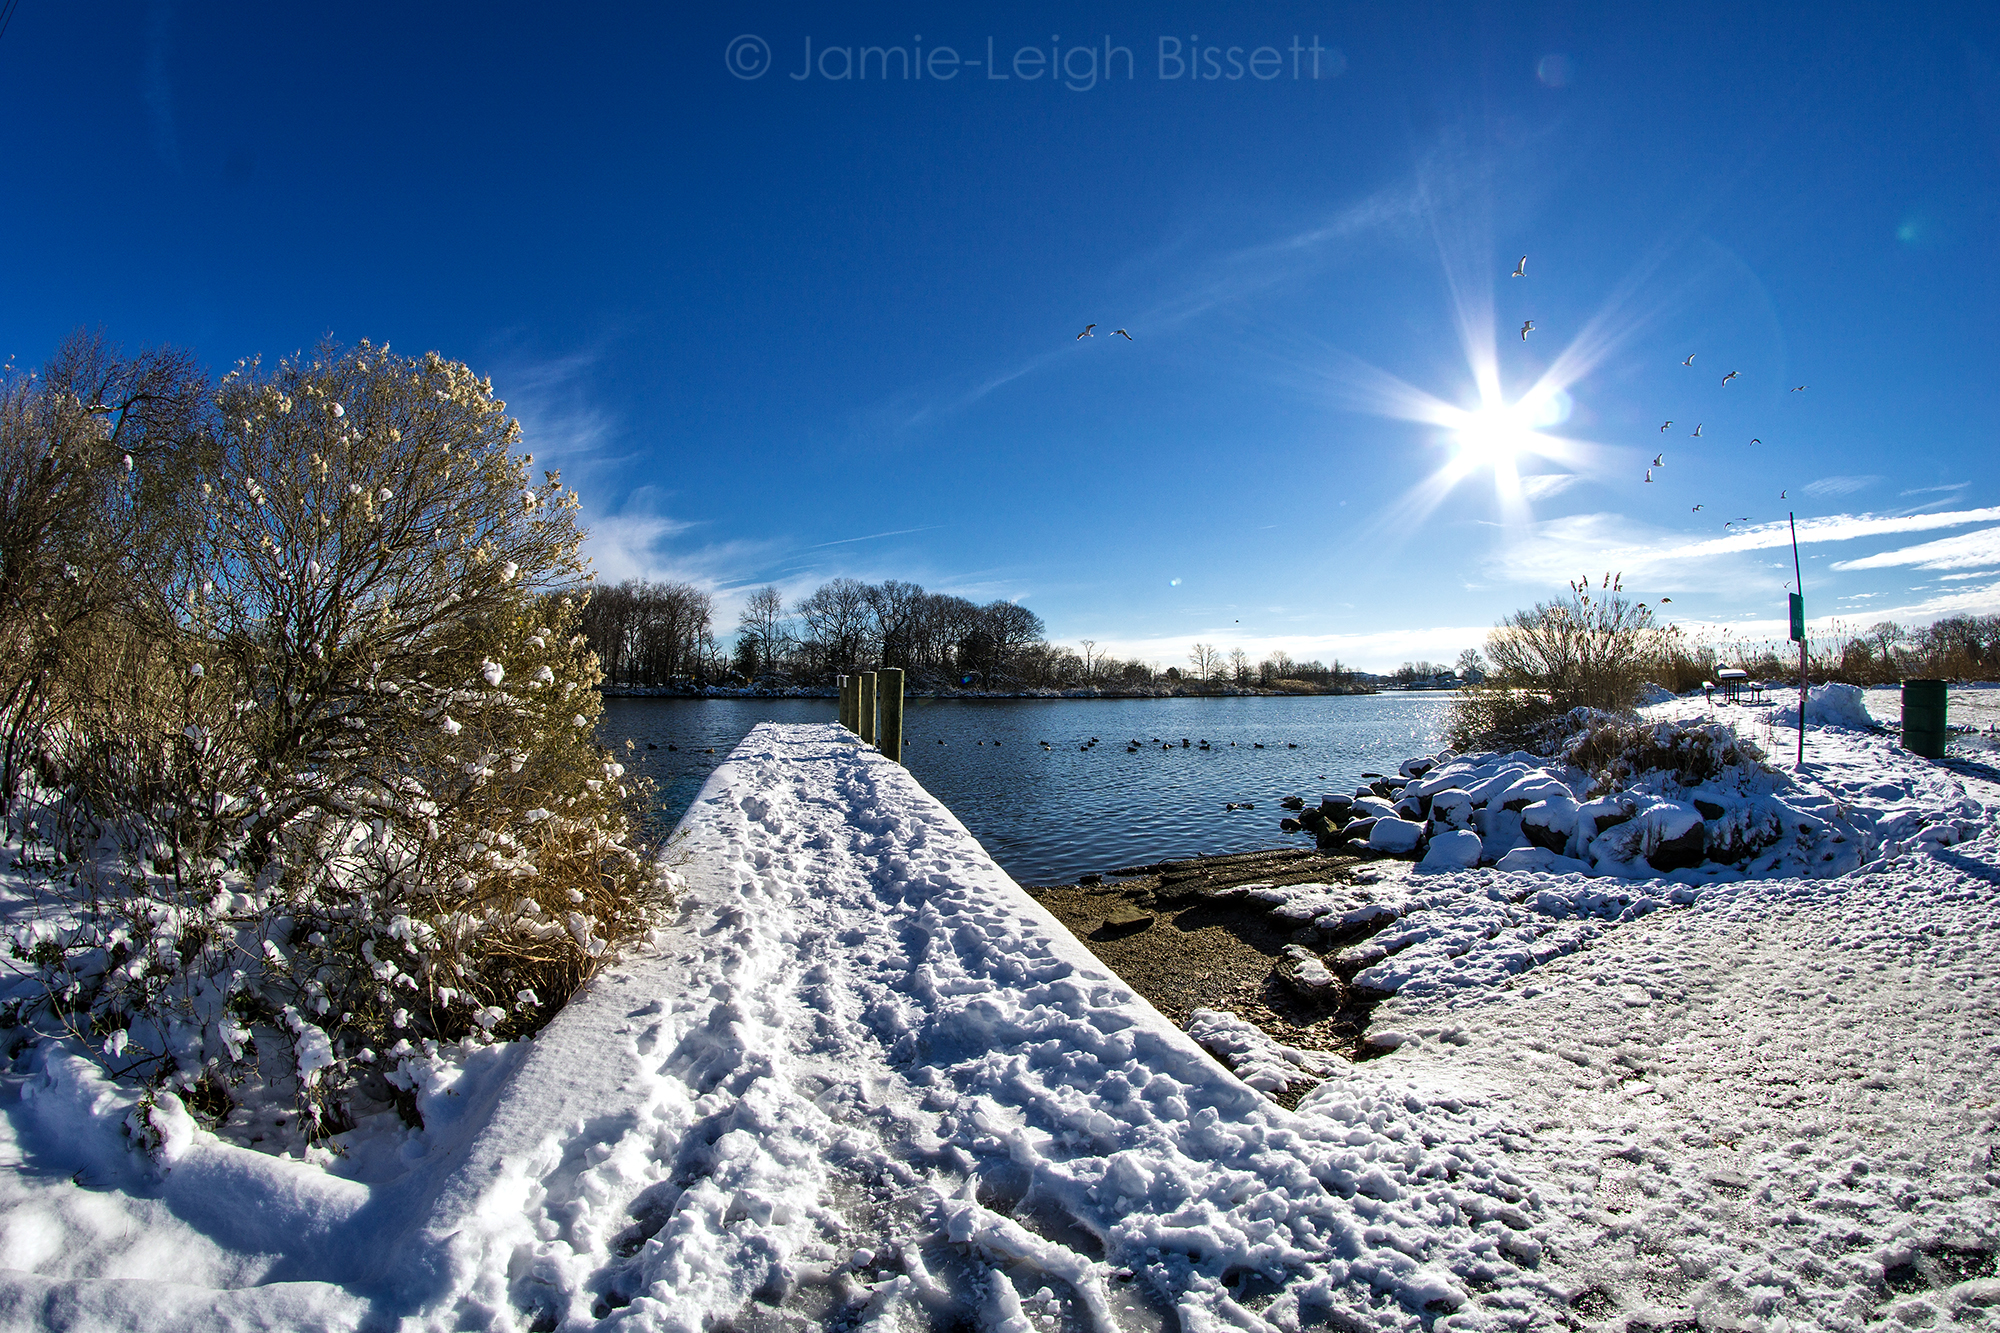 20190114 Merritt Point Park Snow Pics by Jamie-Leigh Bissett 001.jpg